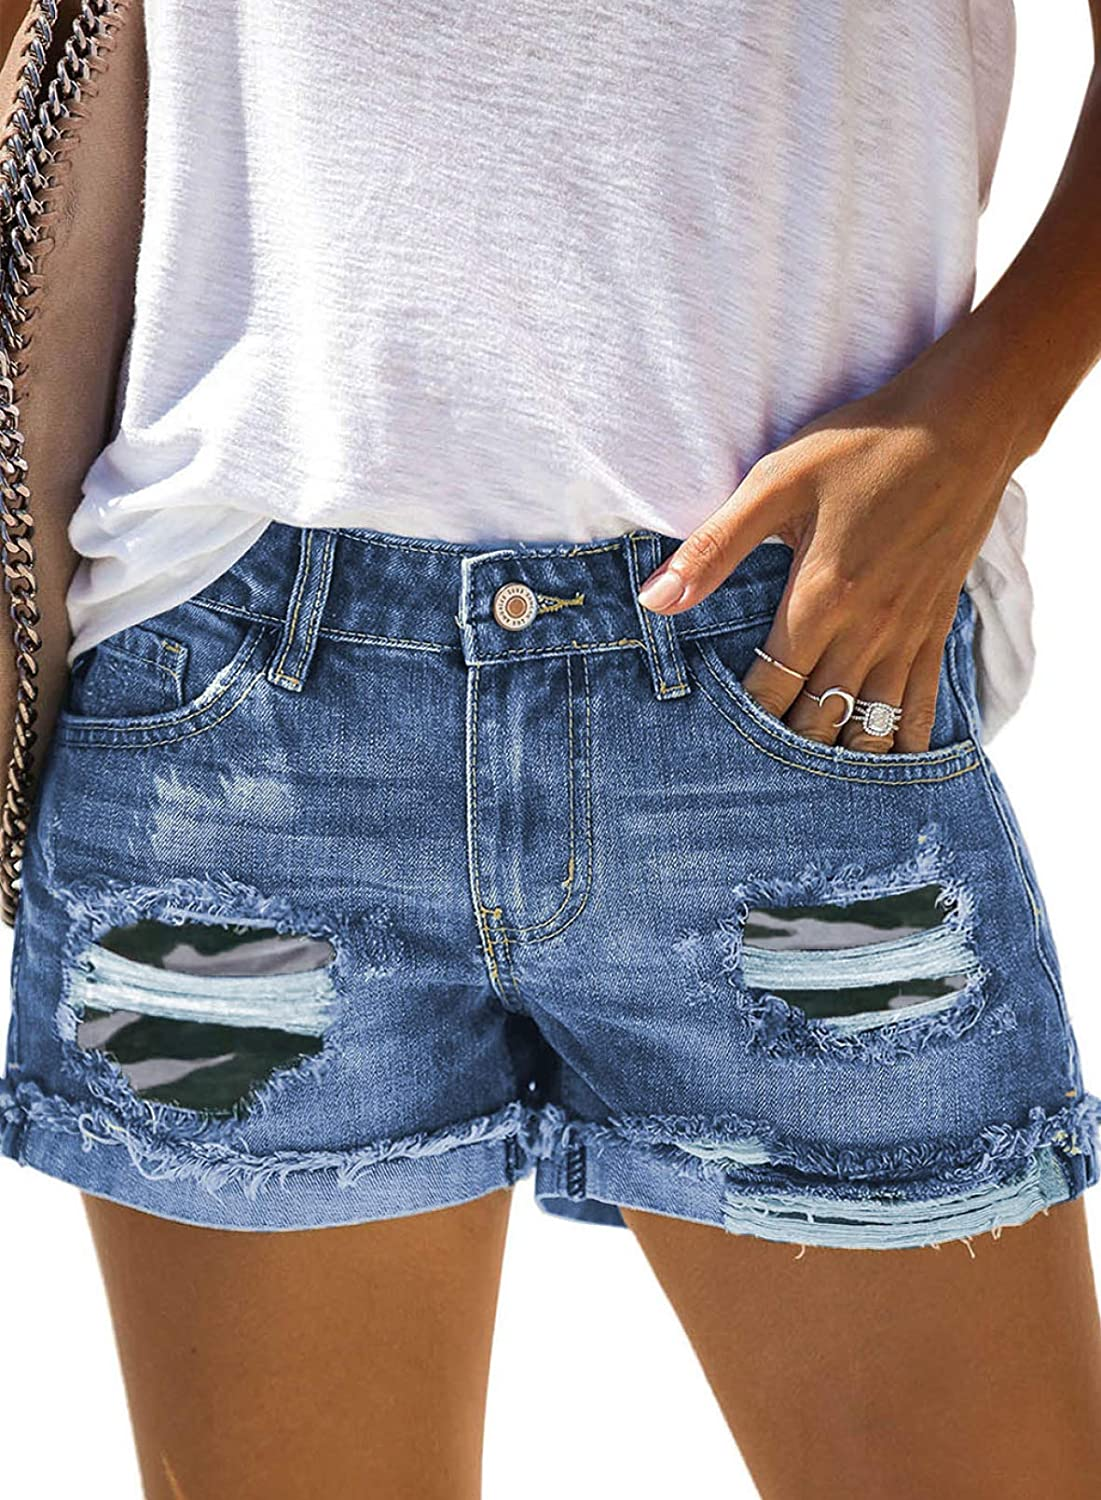 Happy Sailed Womens Ripped Denim Jean Shorts Casual Mid Rise Folded Hem Jeans Shorts with Pocket(S-XXL)